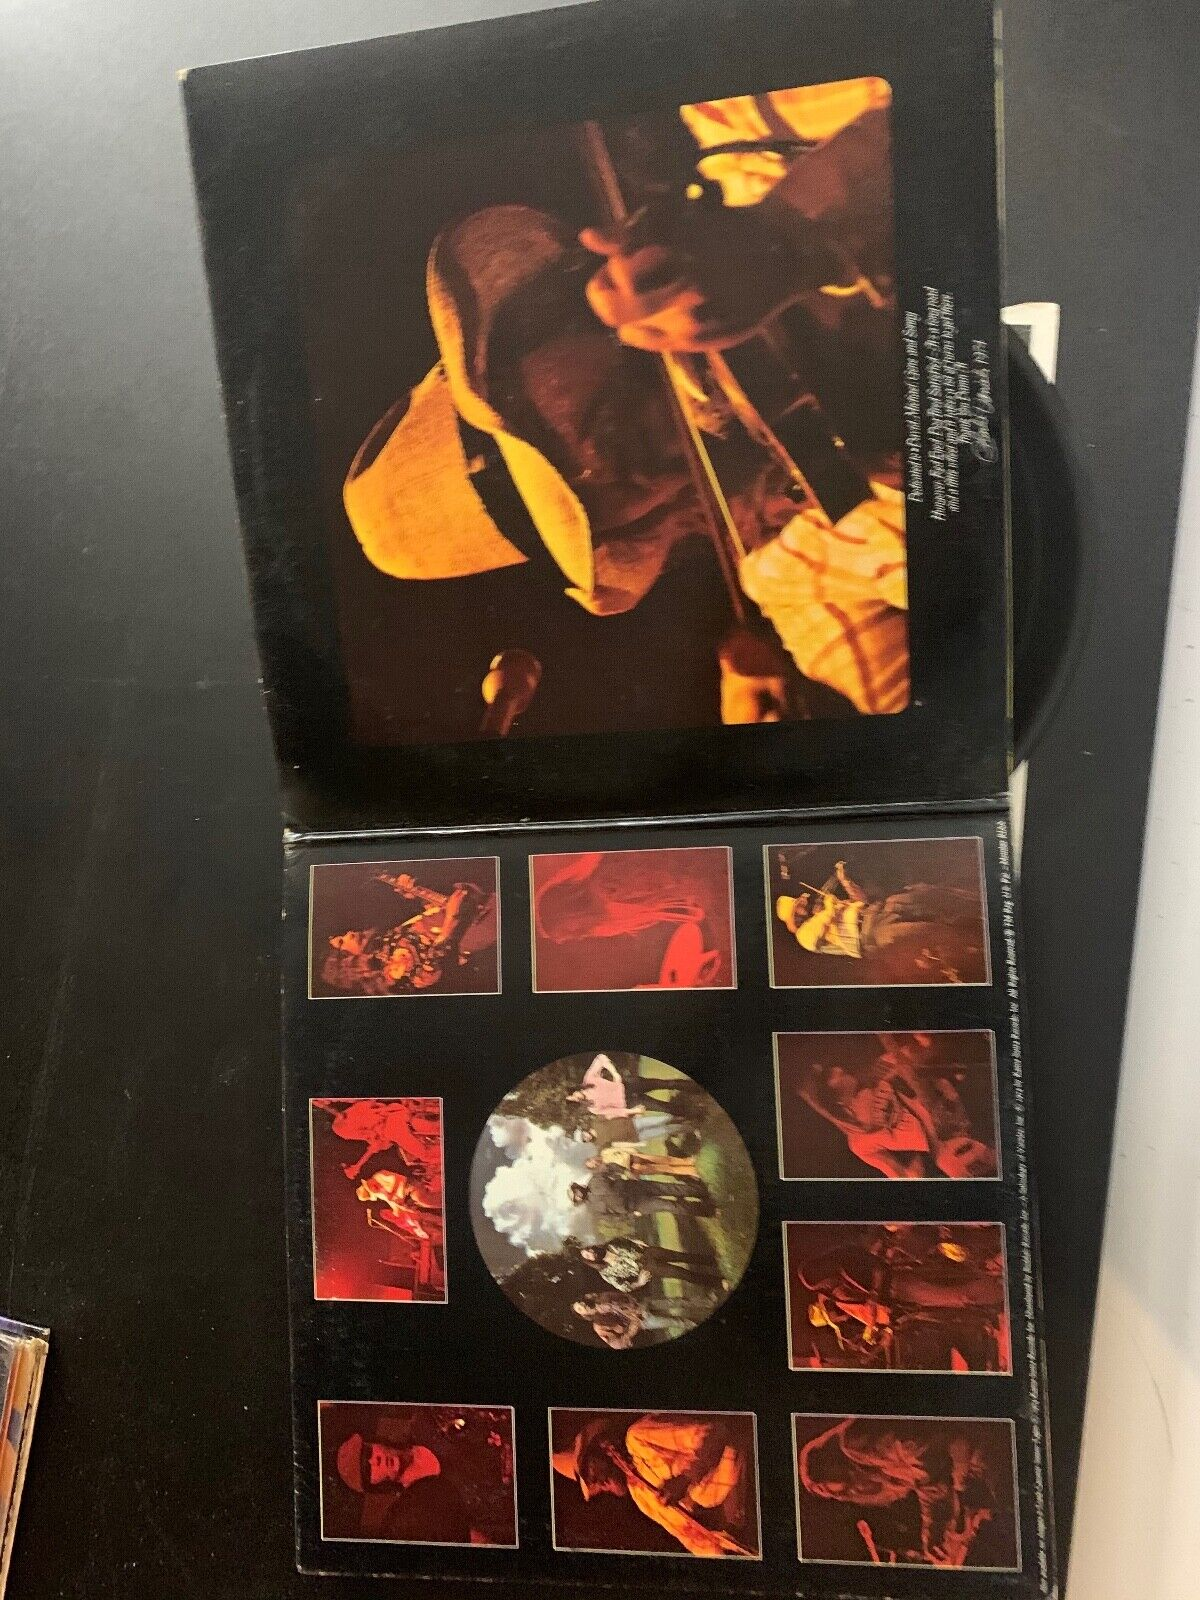 LP RECORD - THE CHARLIE DANIELS BAND - FIRE ON THE MOUNTAIN - KAMA SUTRA RECORD - $9.99